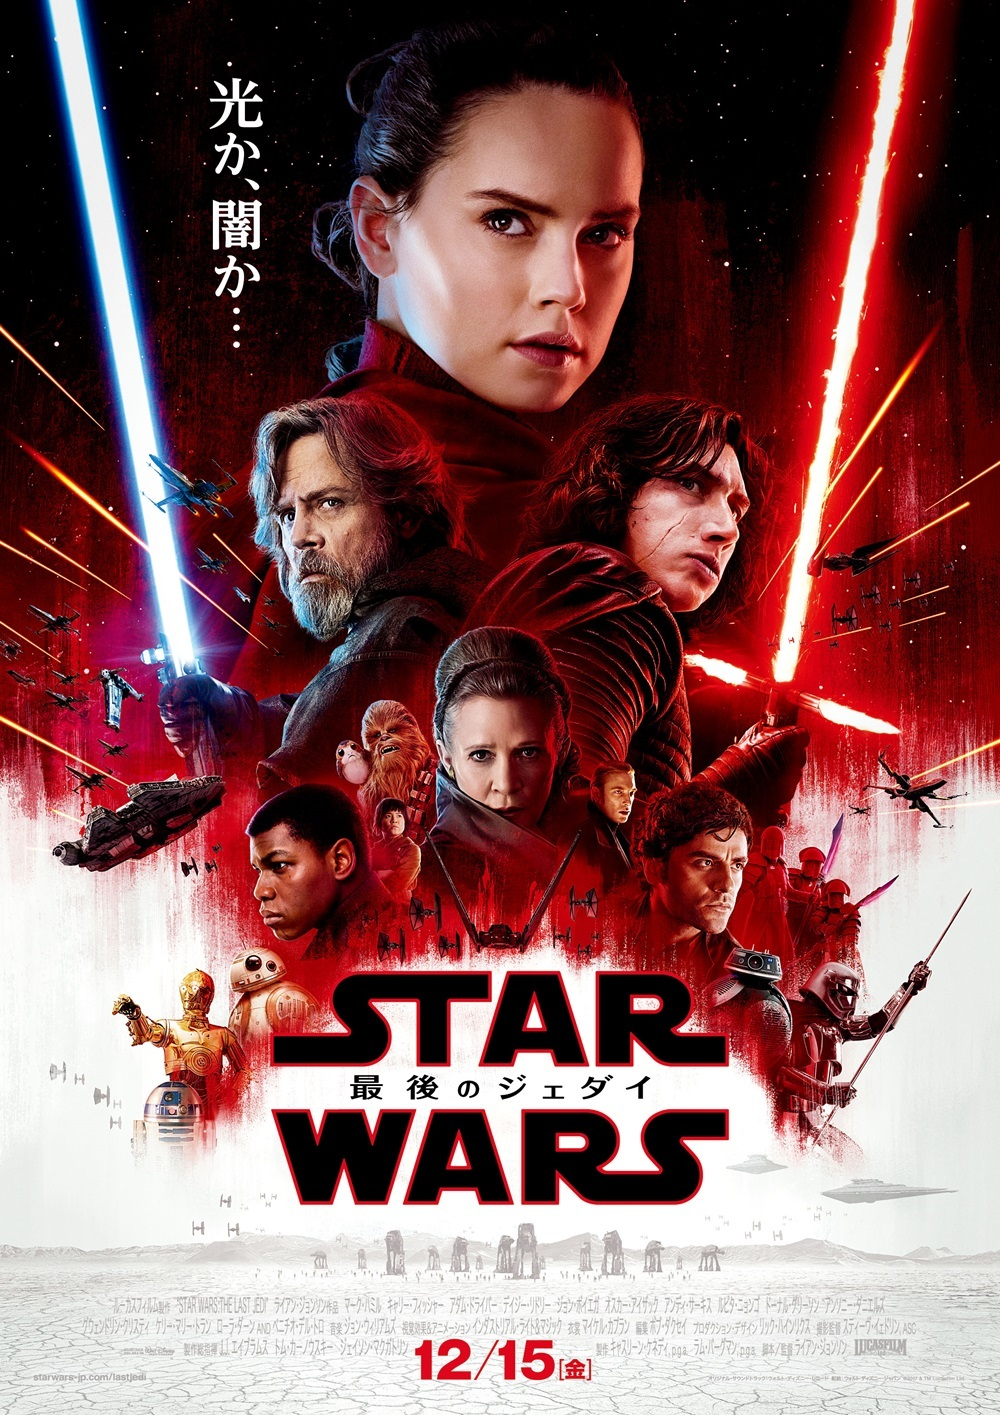 (C)2017 Lucasfilm Ltd. All Rights Reserved.